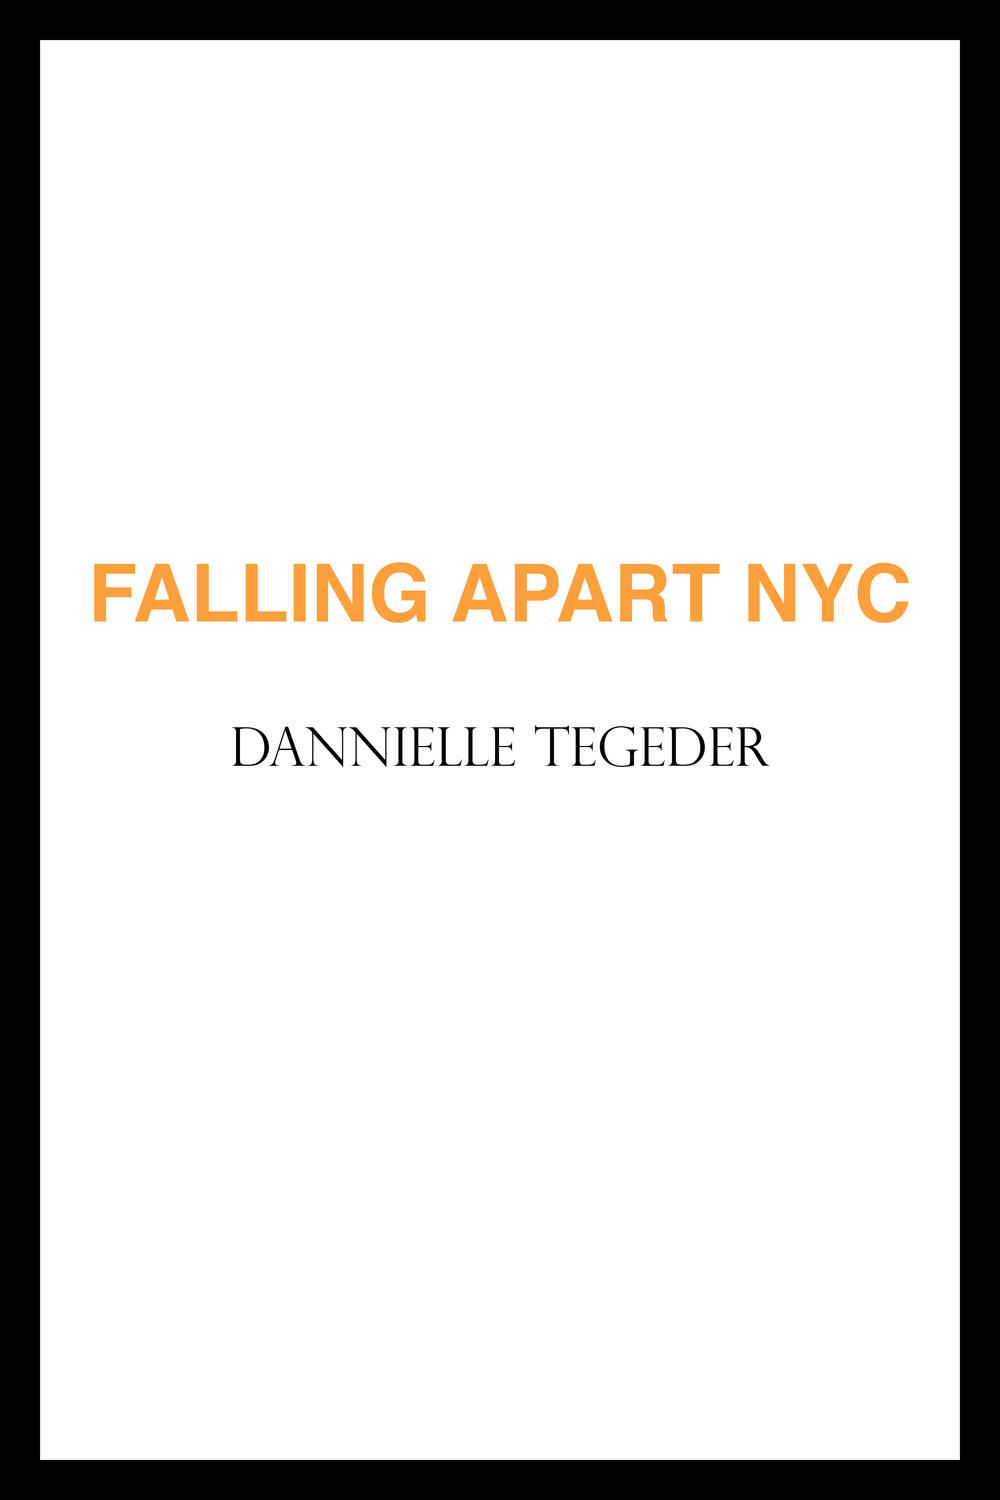 Falling Apart NYC on Ubu Editions